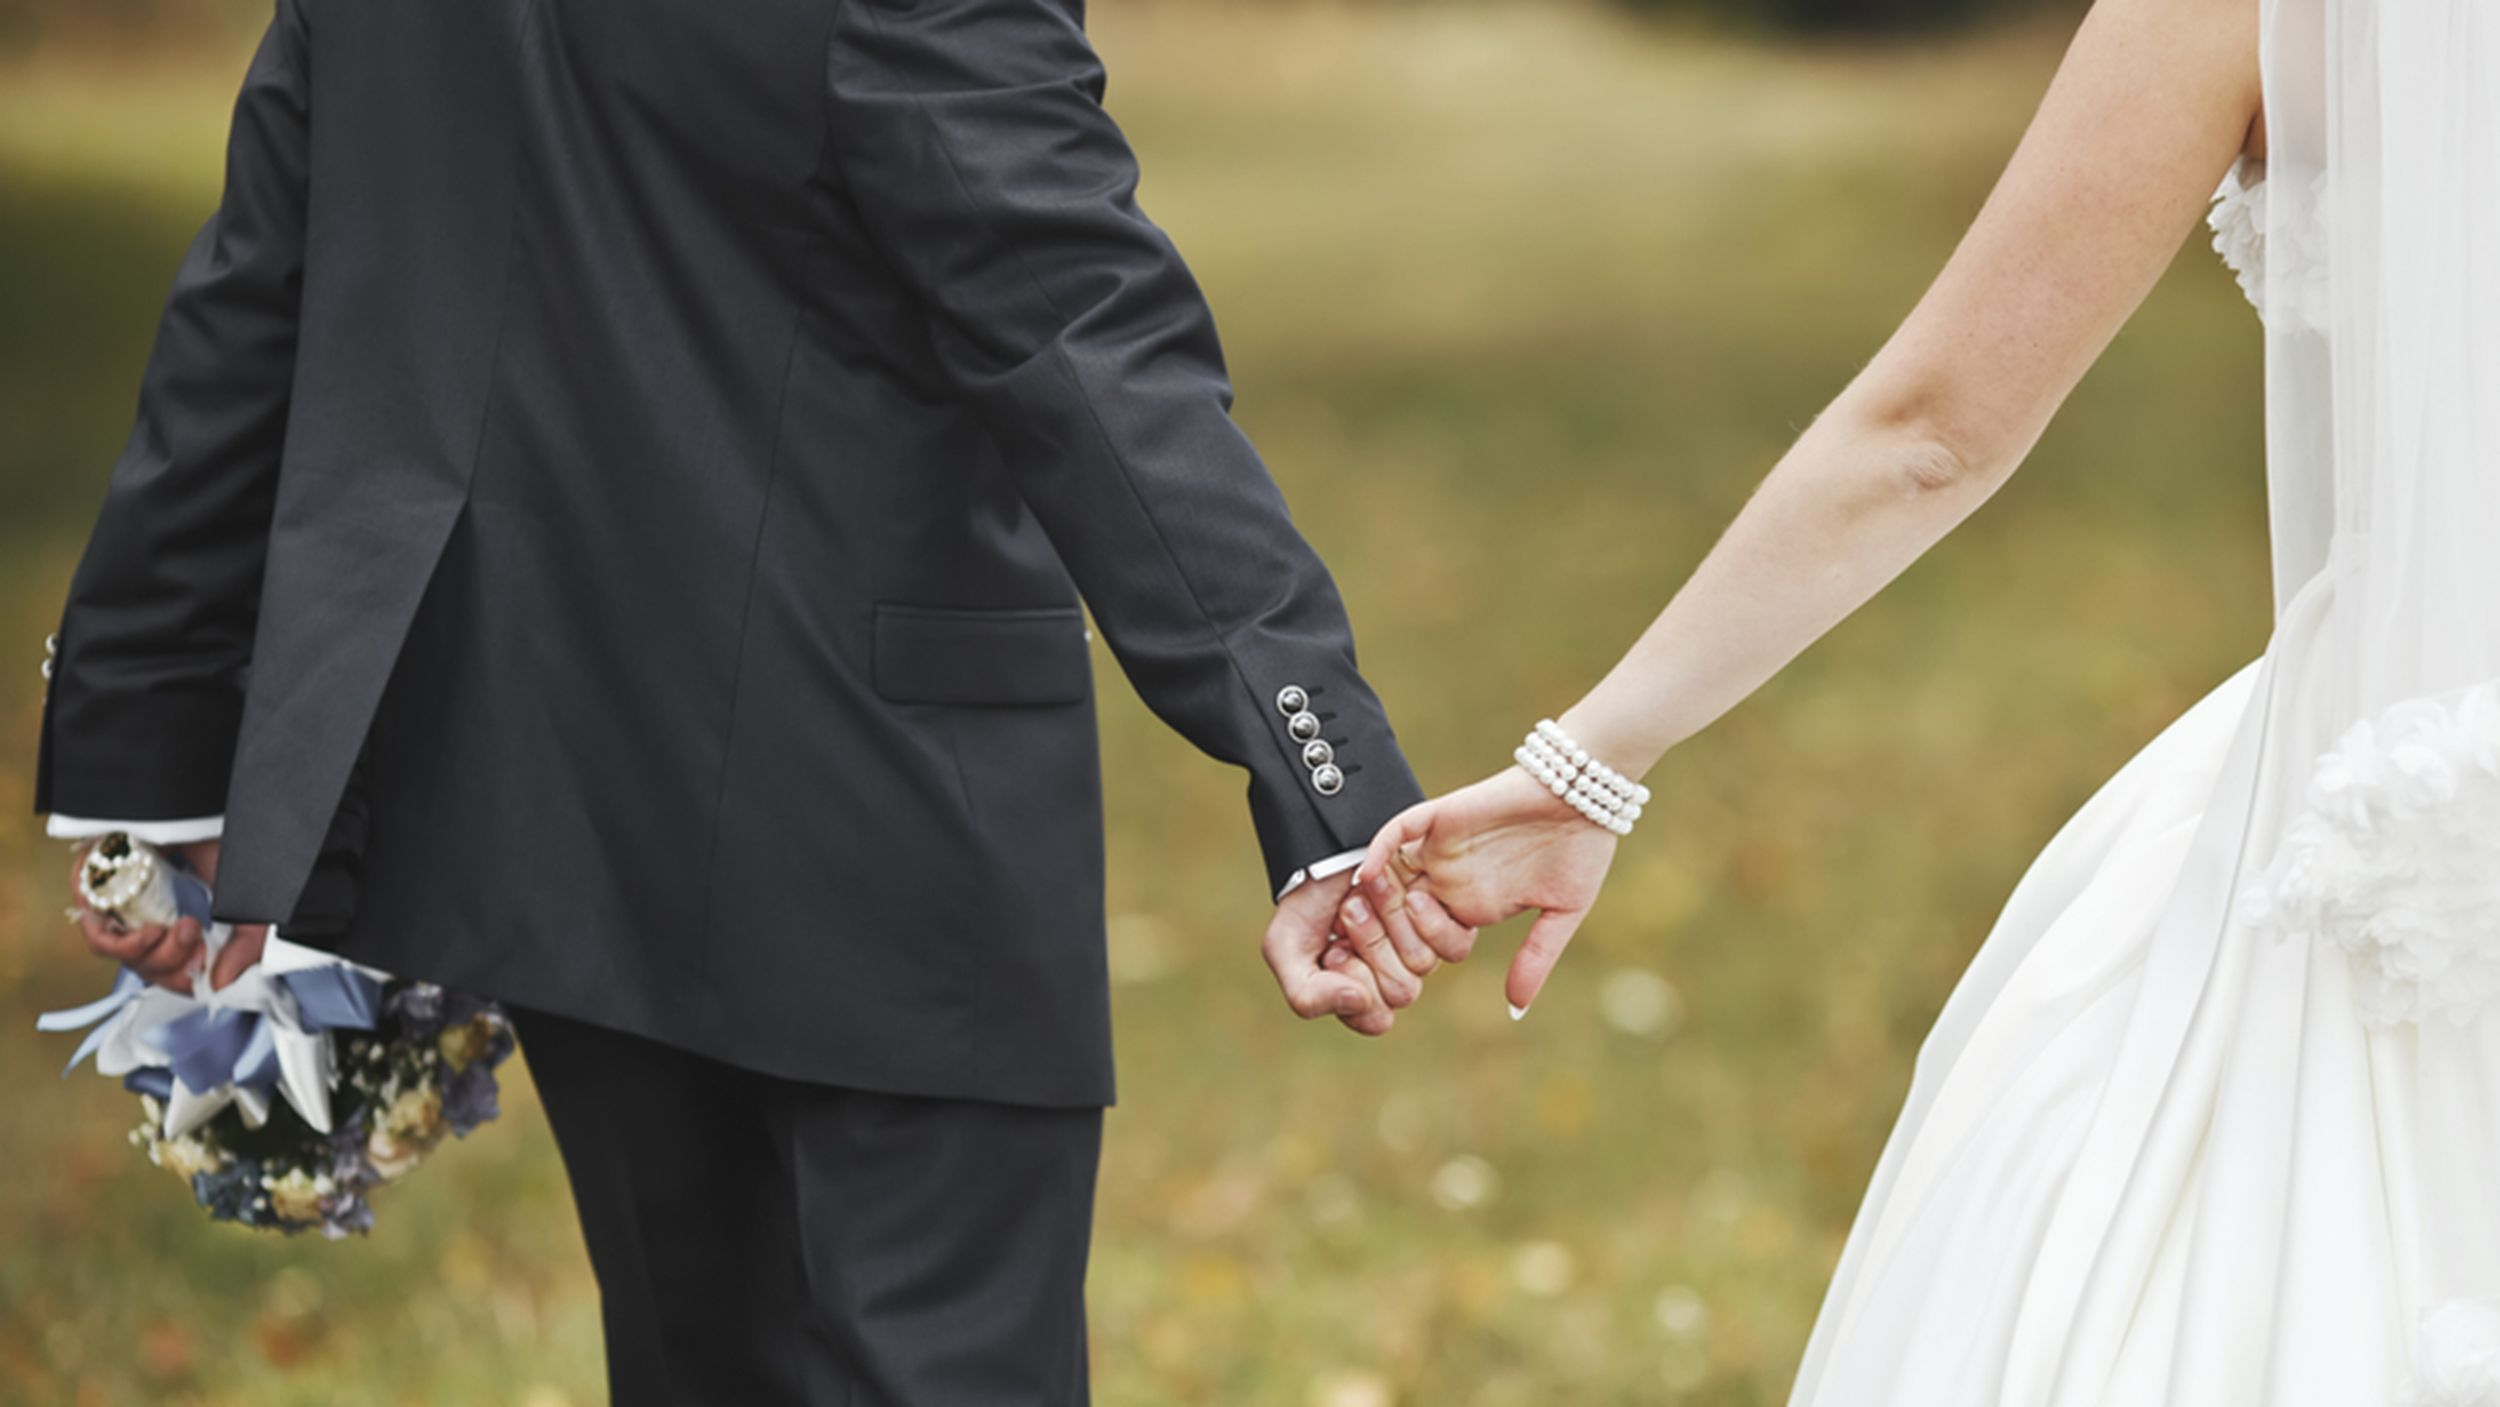 3 tips to make your marriage stronger and happier than ever